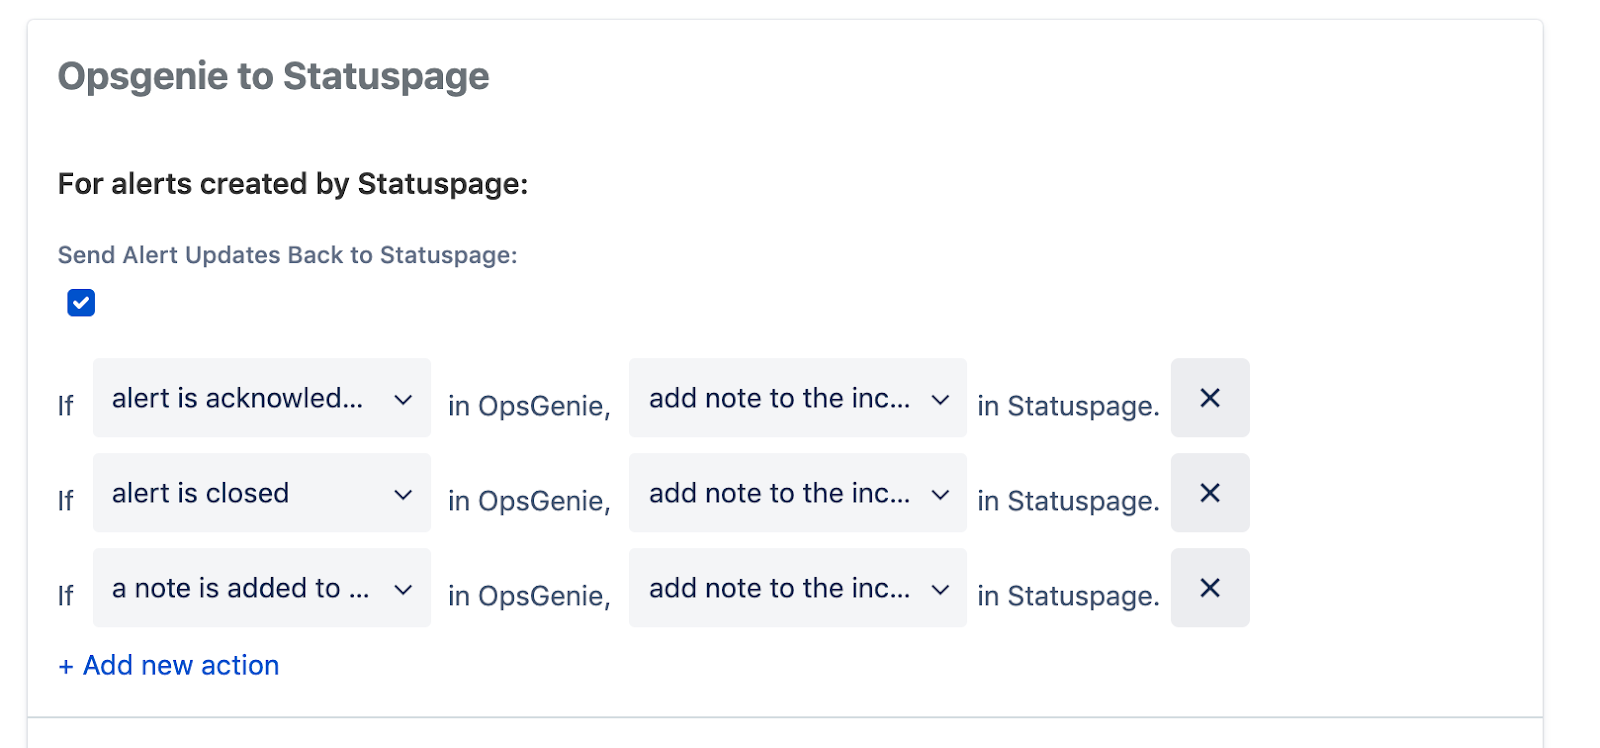 Alerts from opsgenie to statuspage